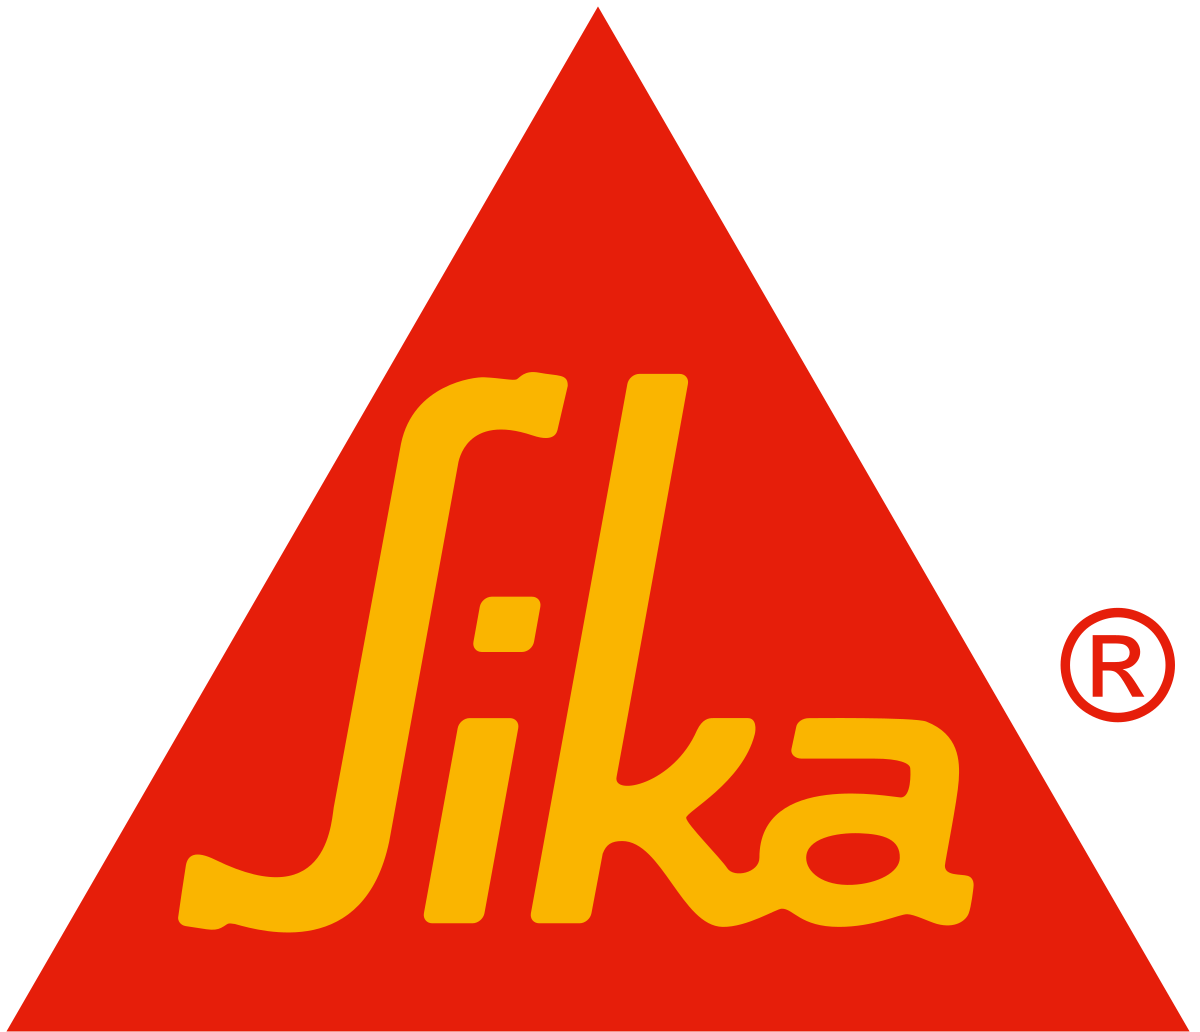 Sika Corporation Png - Sika AG - Wikipedia